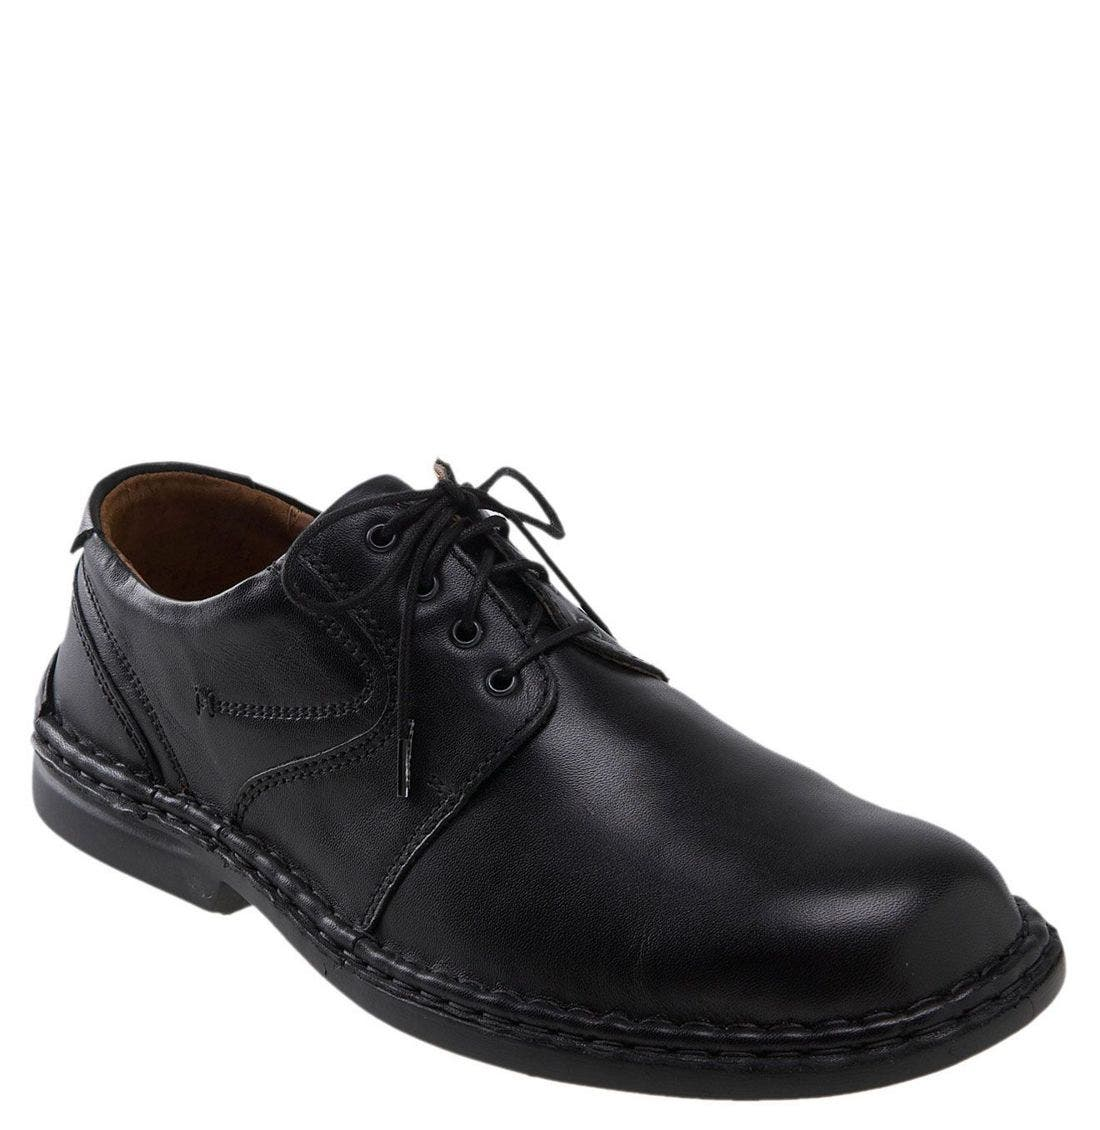 Main Image - Josef Seibel 'Walt' Casual Oxford